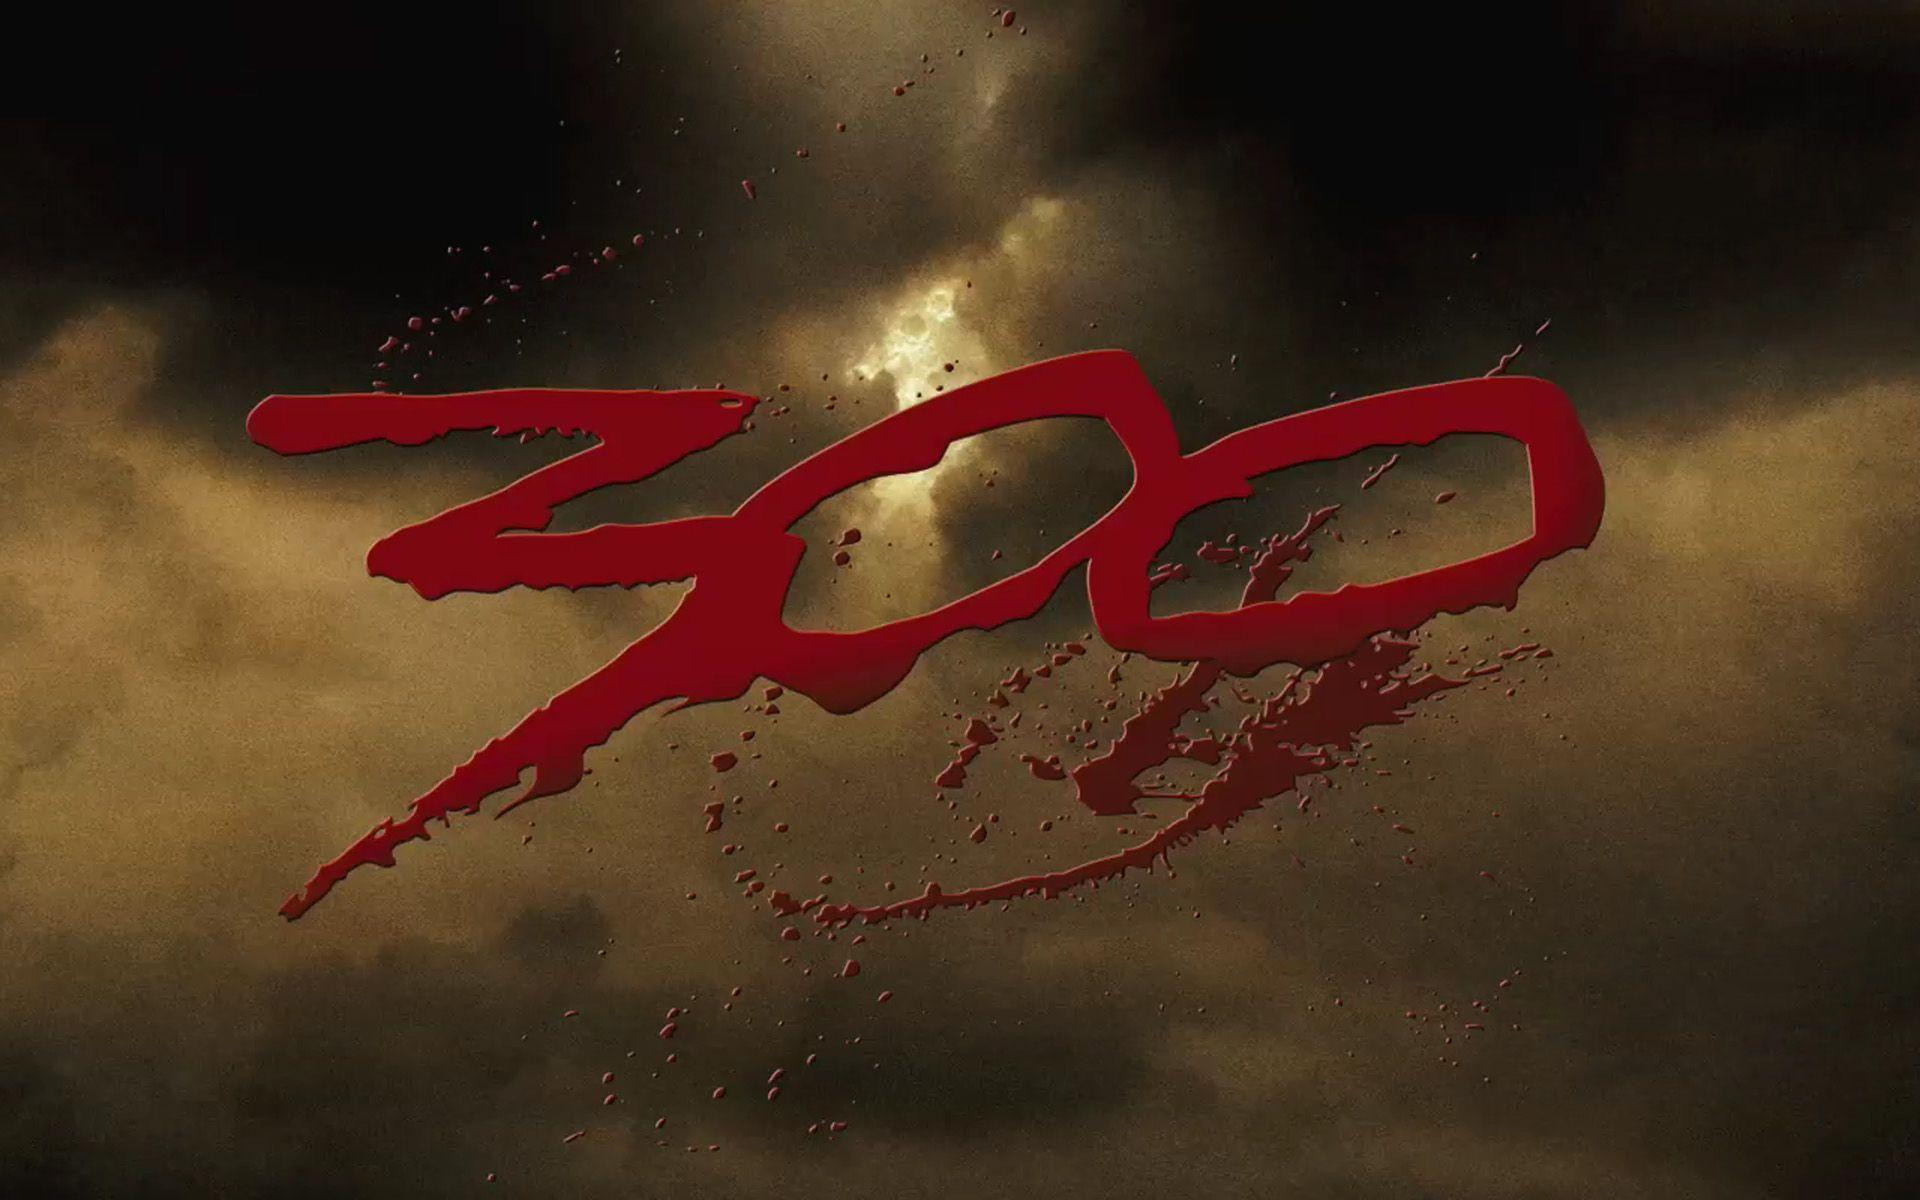 300 Wallpapers HD - Wallpaper Cave